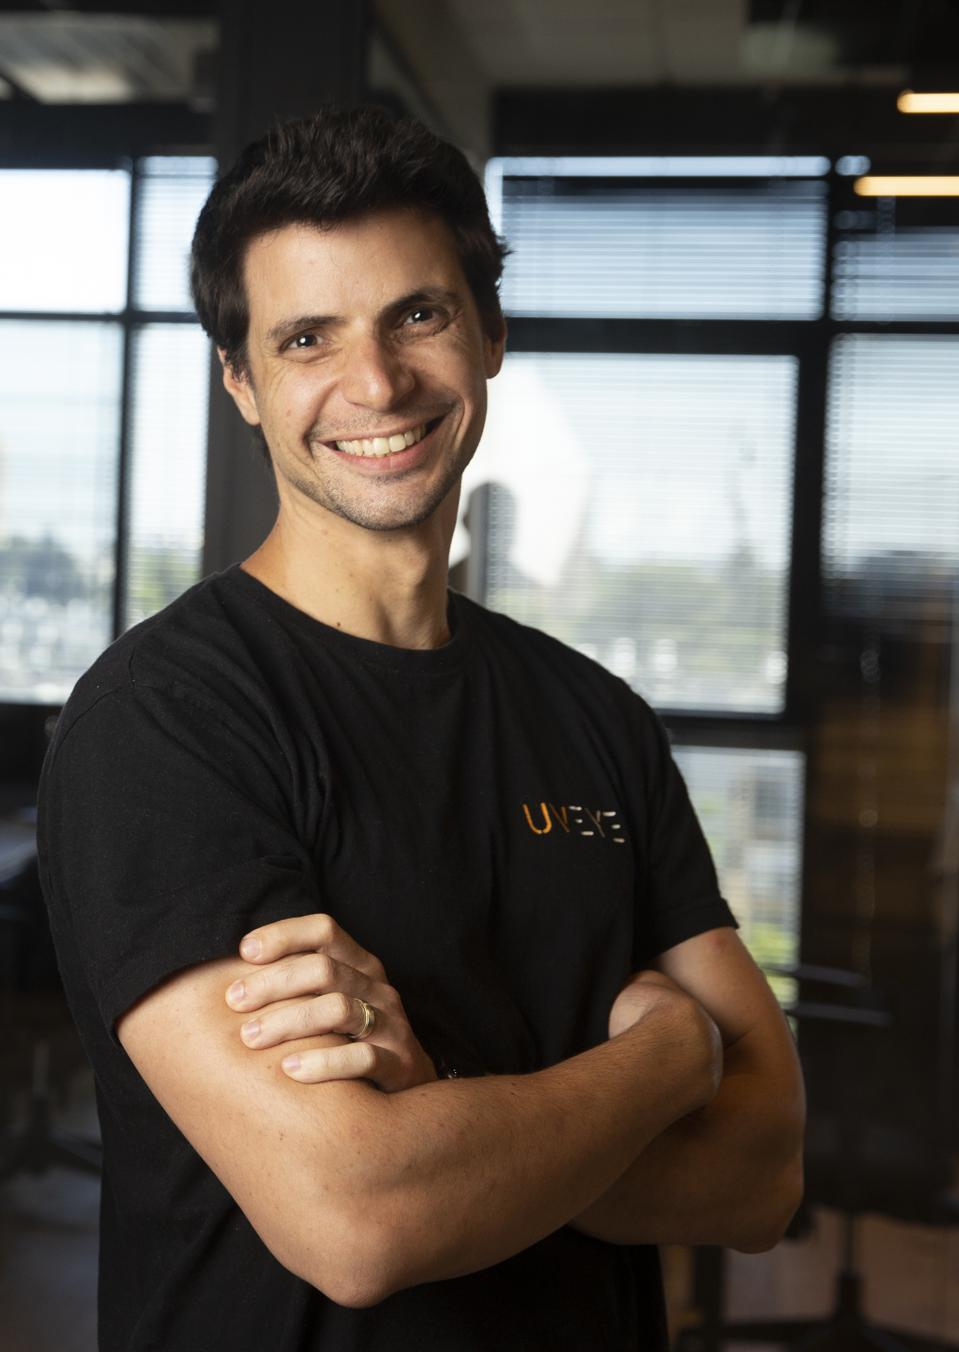 UVeye was founded four years ago in Tel Aviv